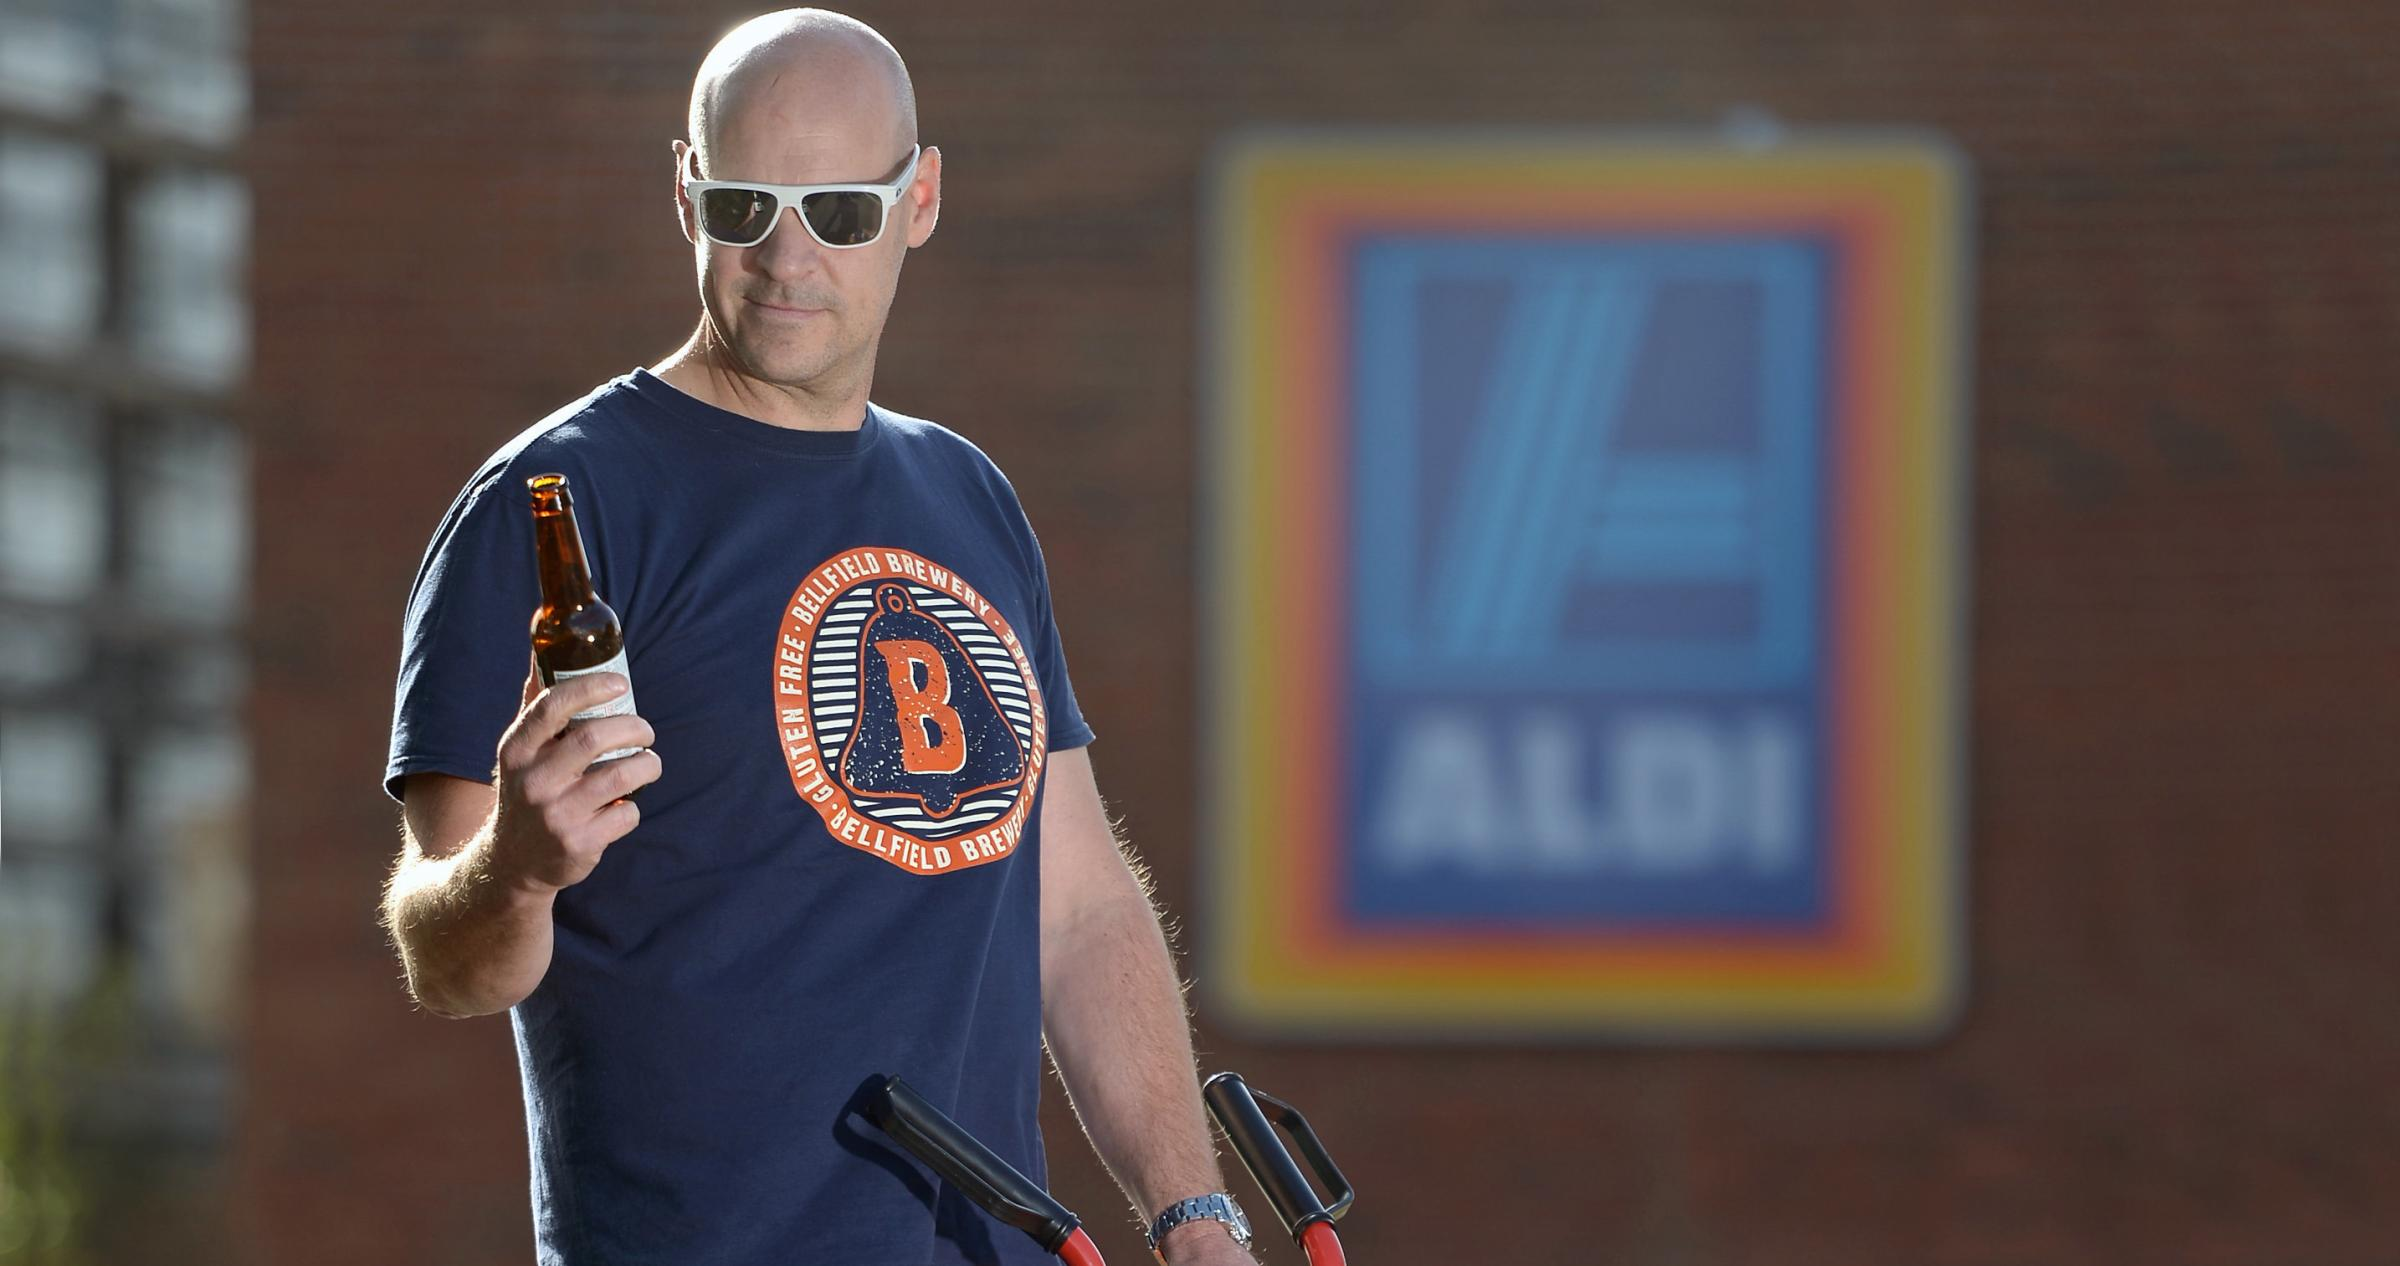 Two Bellfield Brewery beers arrive in Aldi stores this week